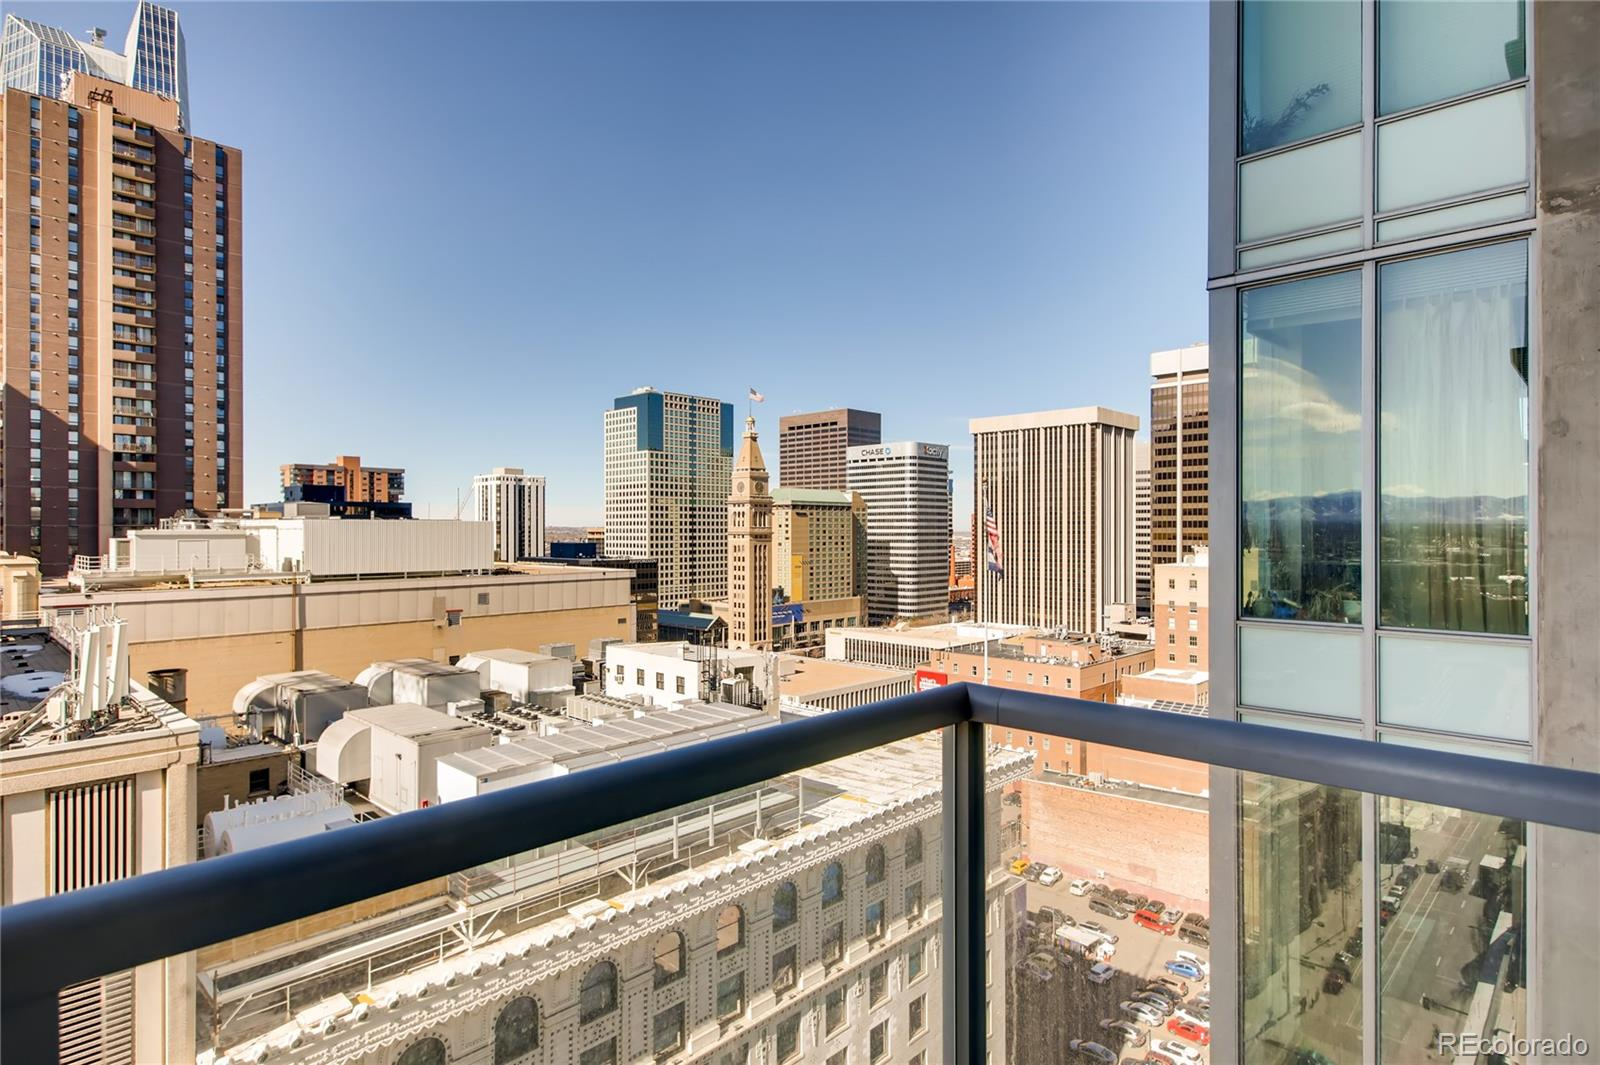 MLS# 9889318 - 12 - 891 14th Street #1807, Denver, CO 80202